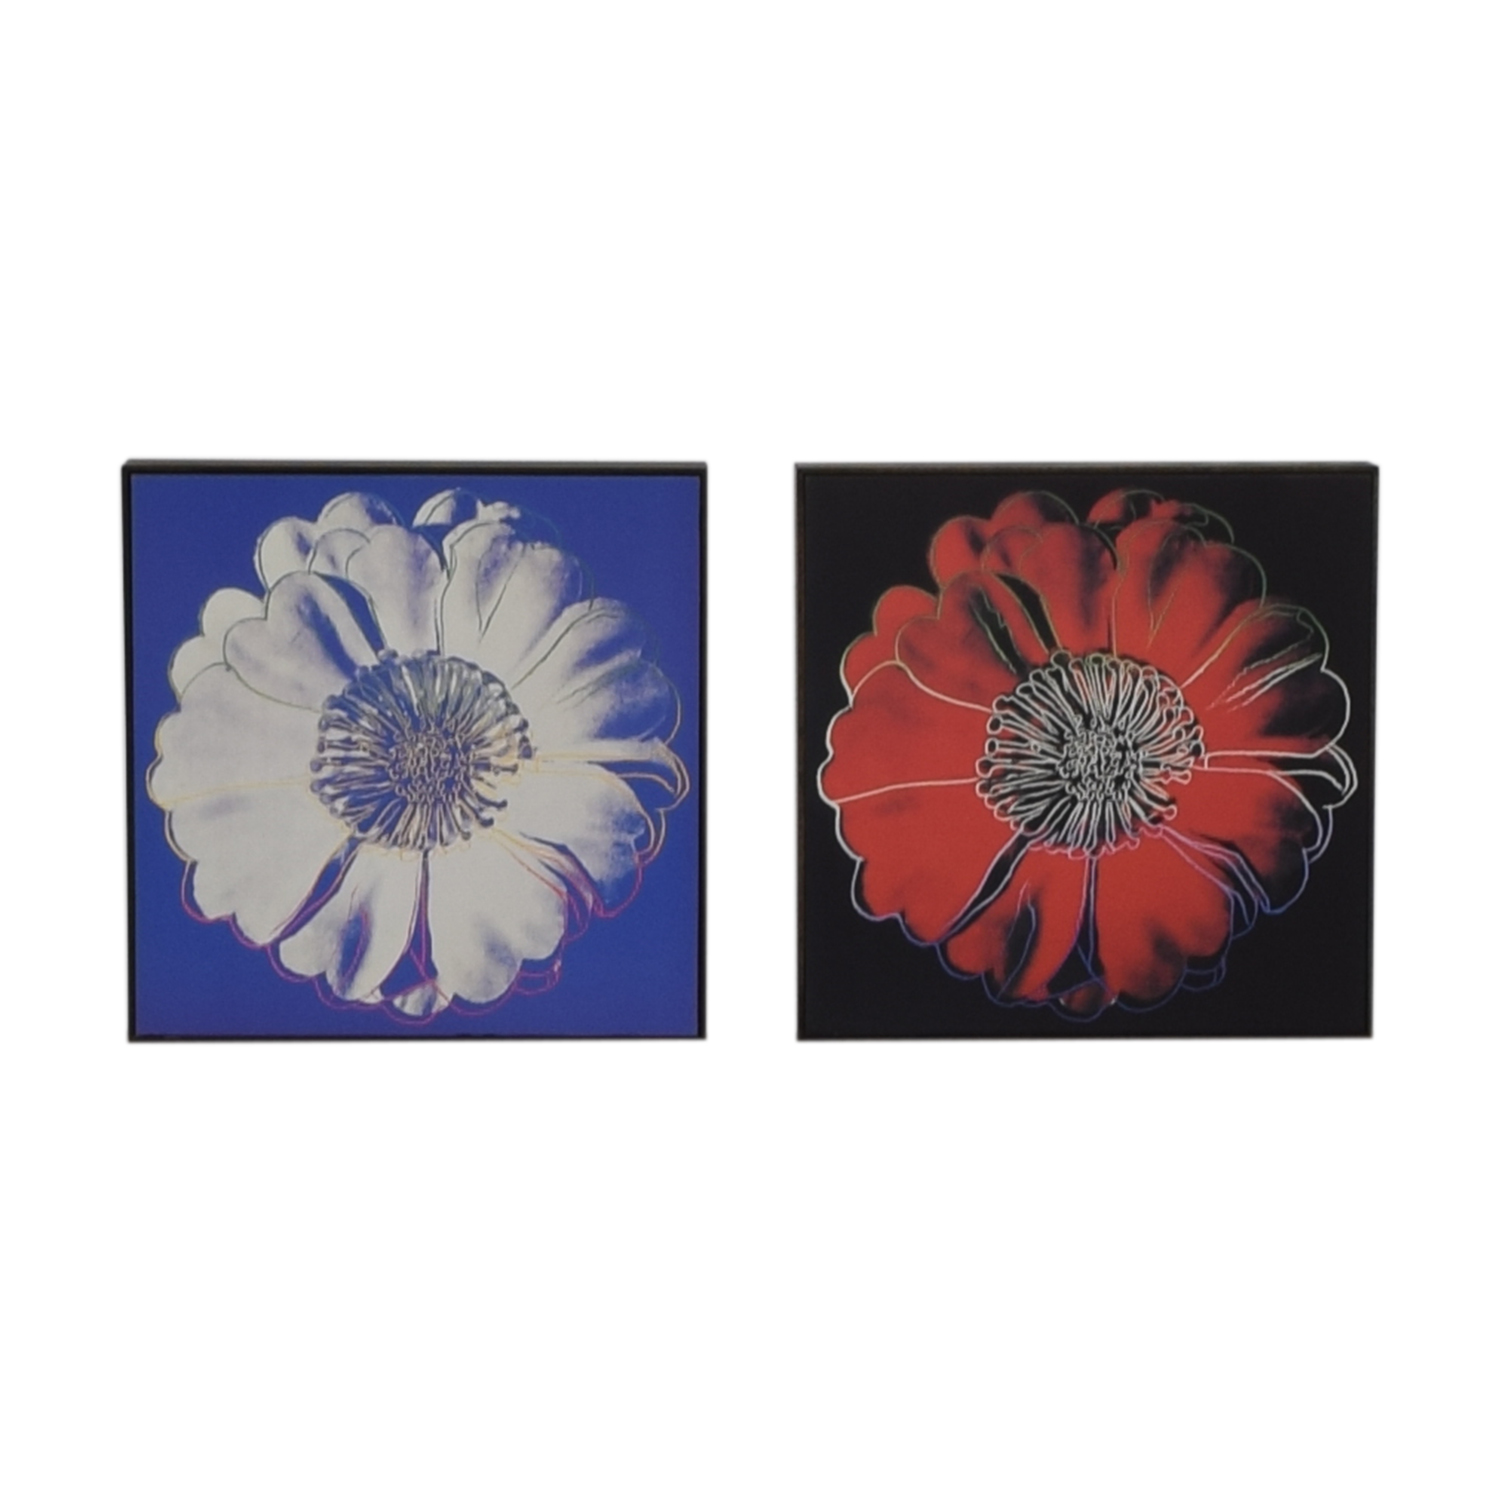 Andy Warhol Framed Flower Prints nj